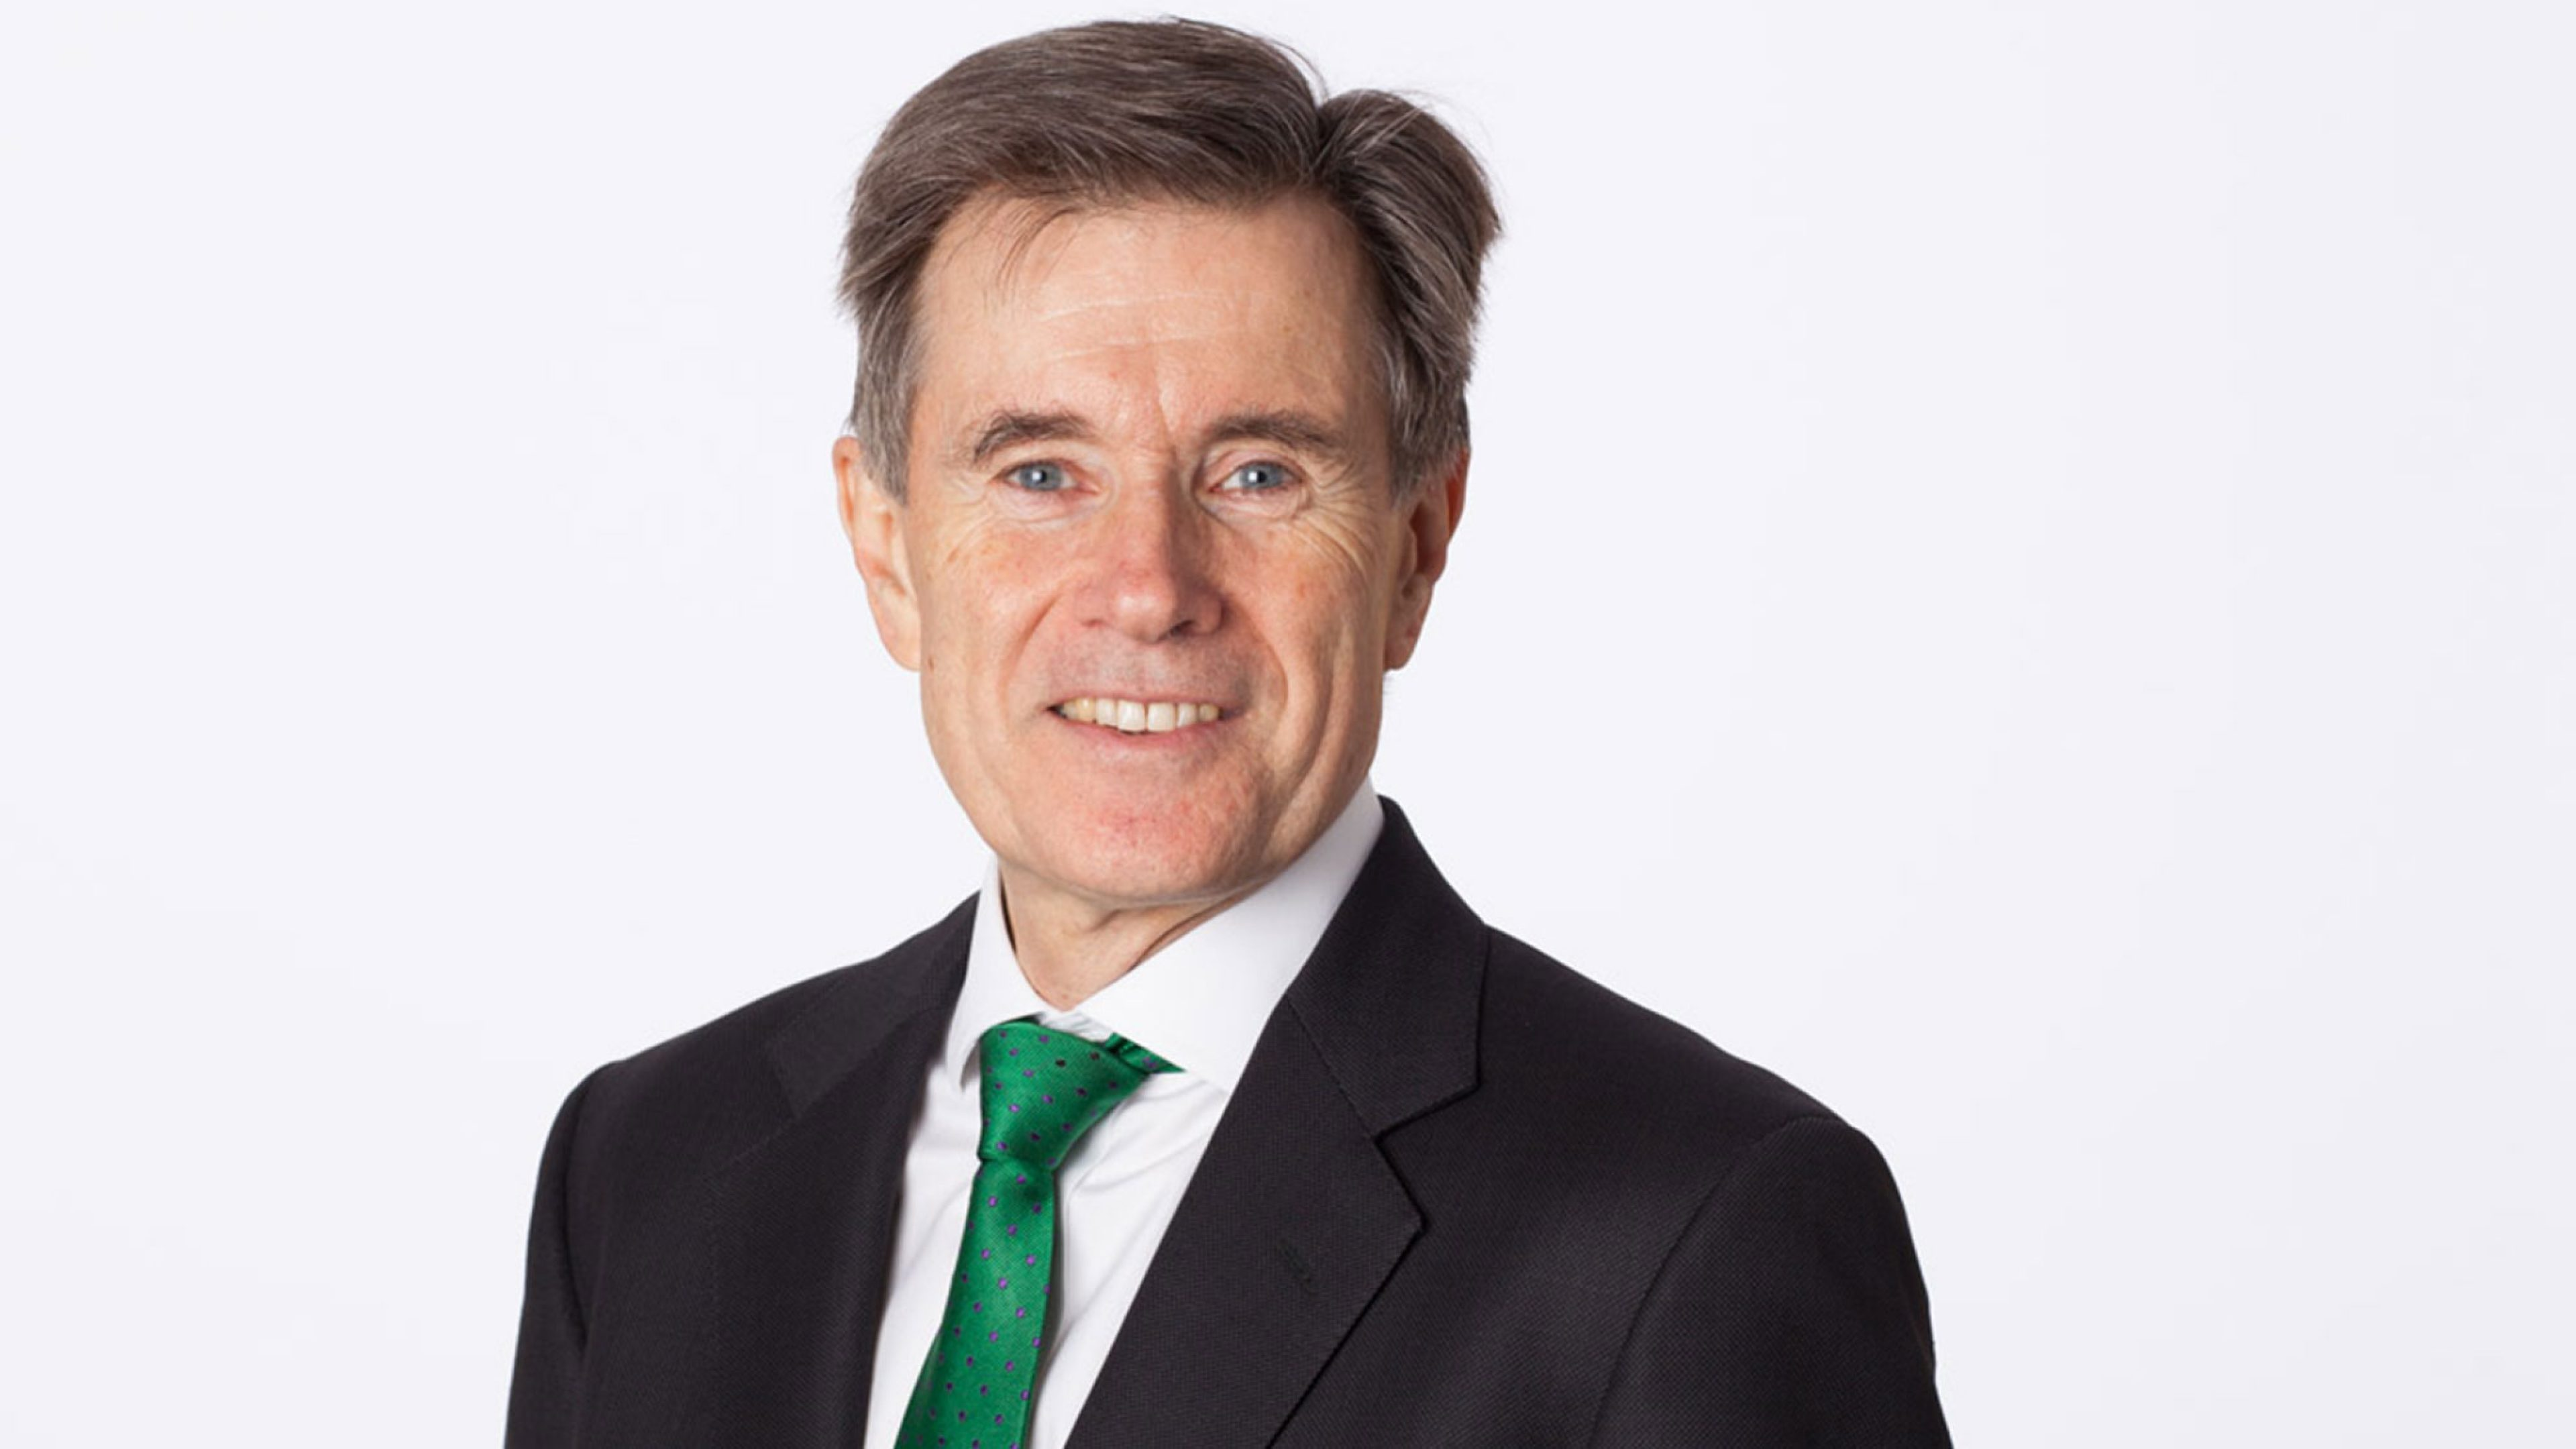 Sir John Sawers - Independent non-executive director